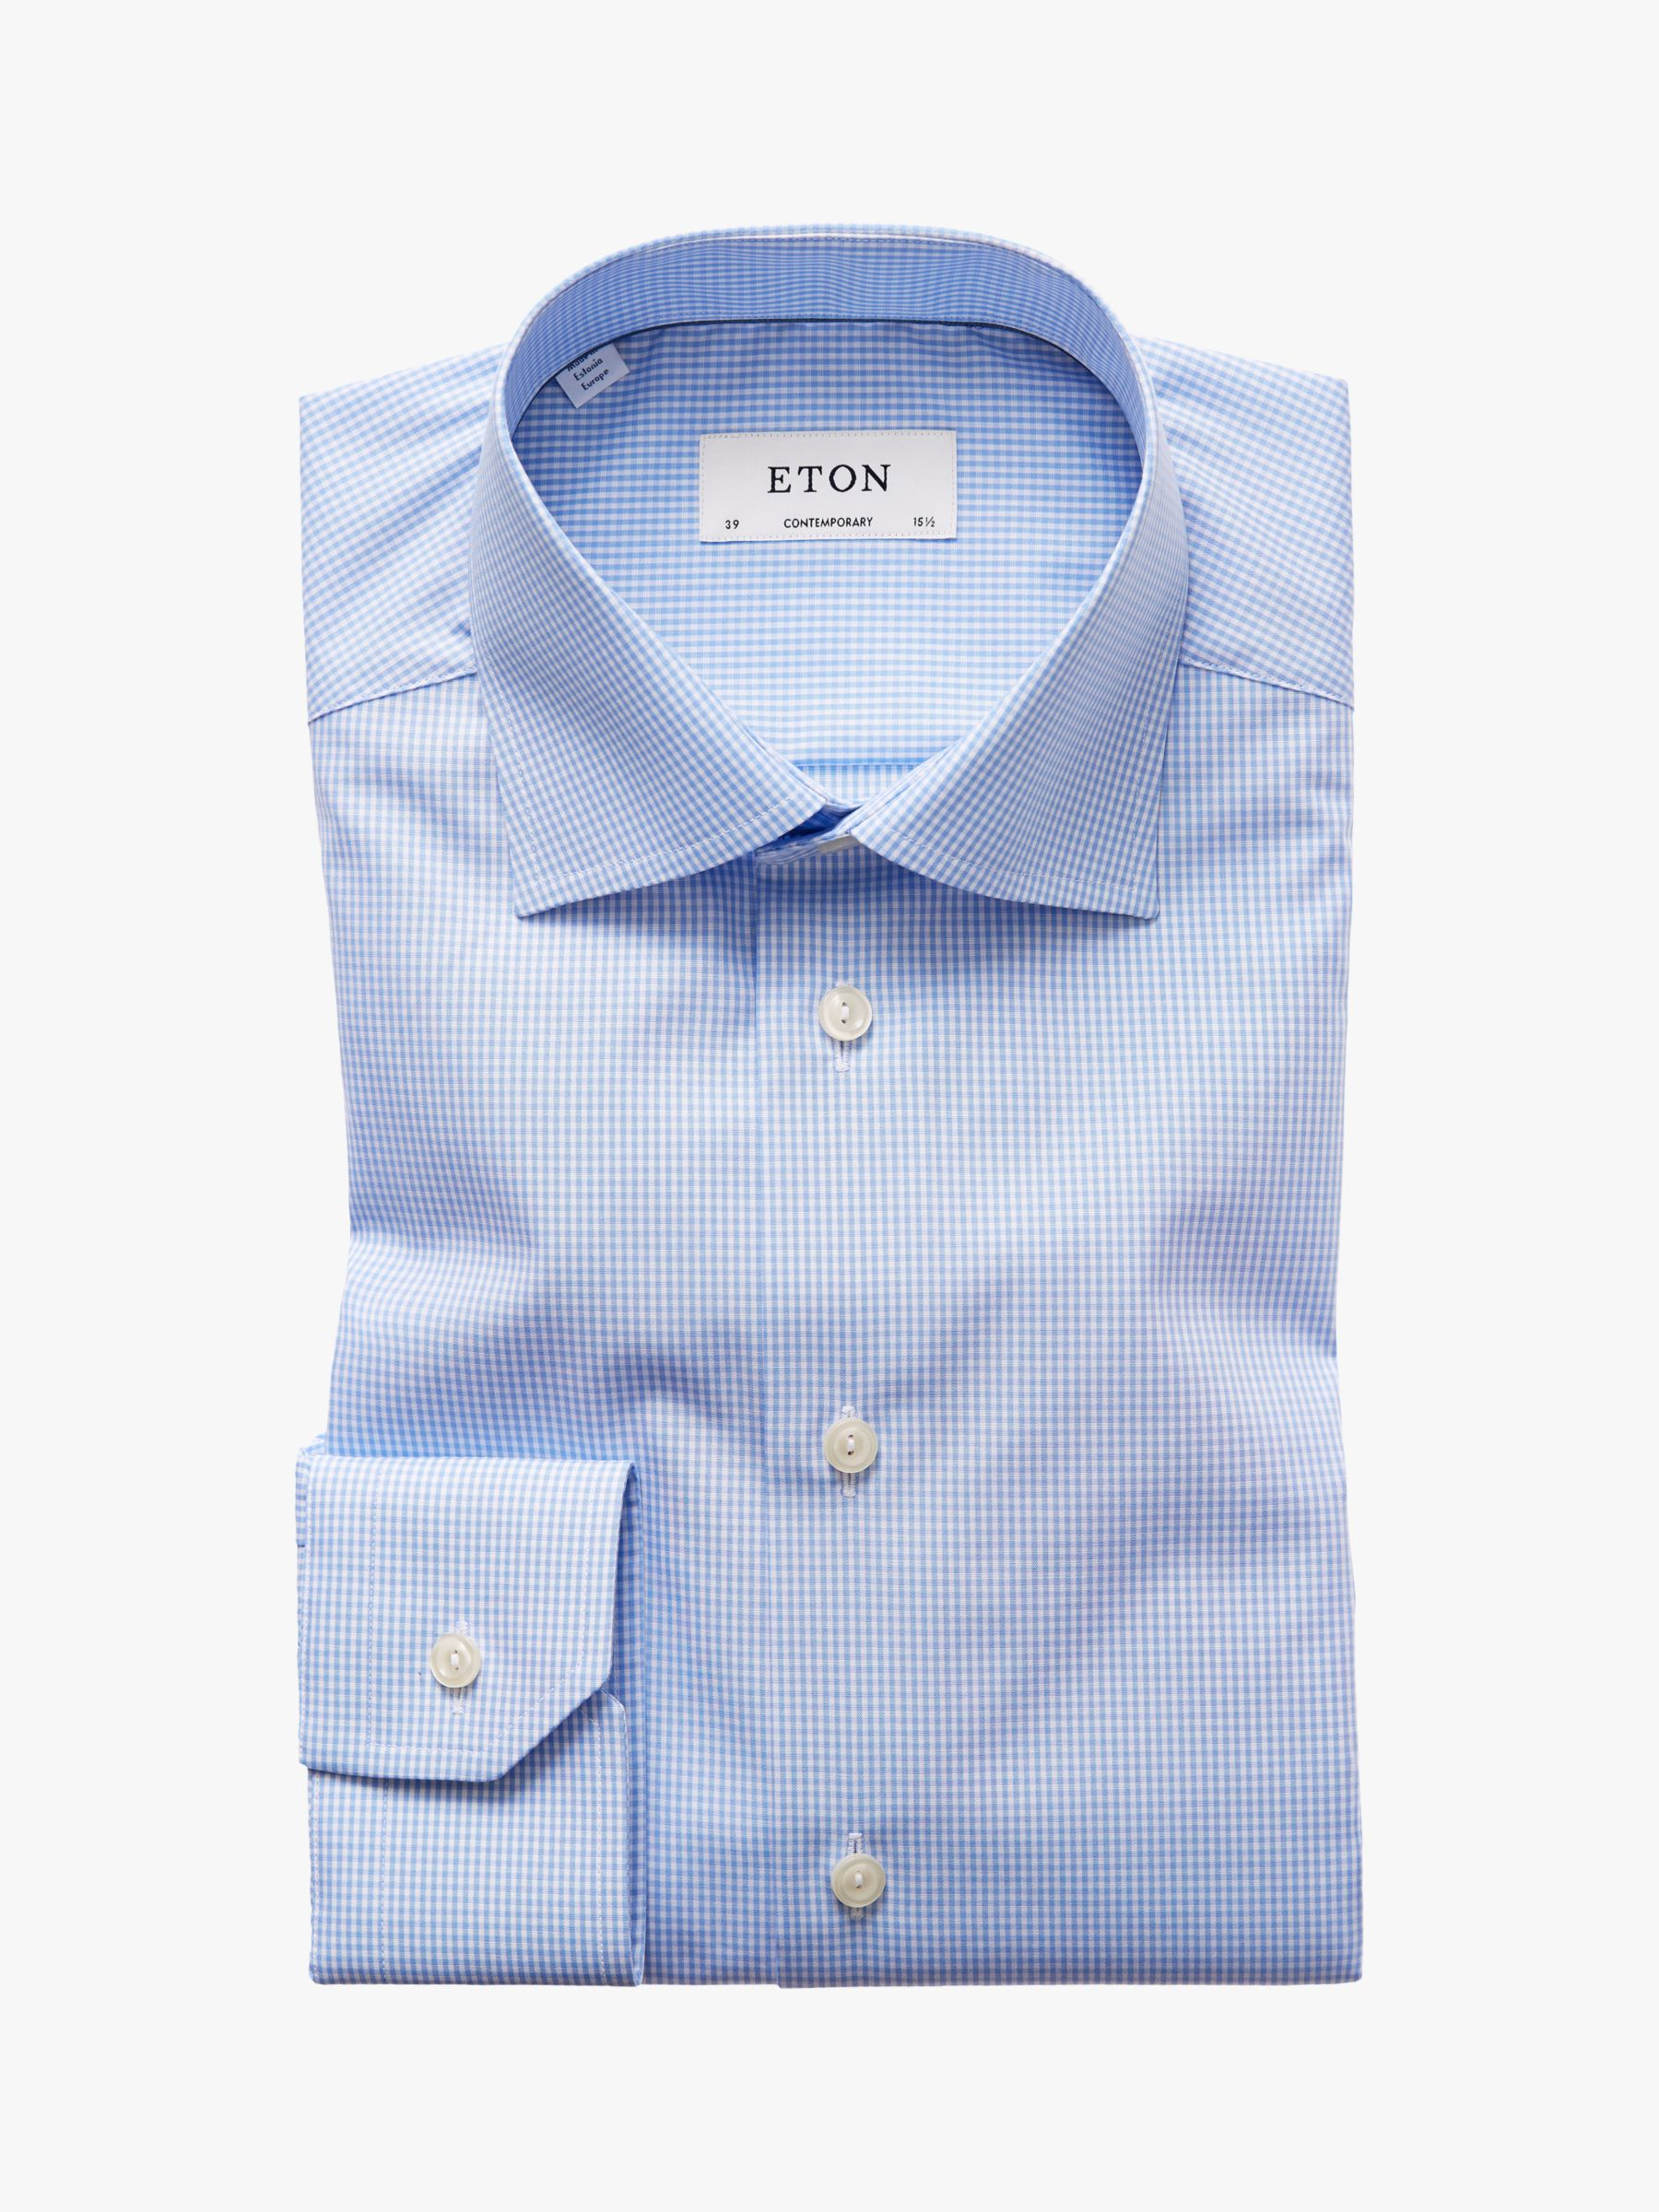 Eton Eton Micro Gingham Check Contemporary Fit Shirt, Blue